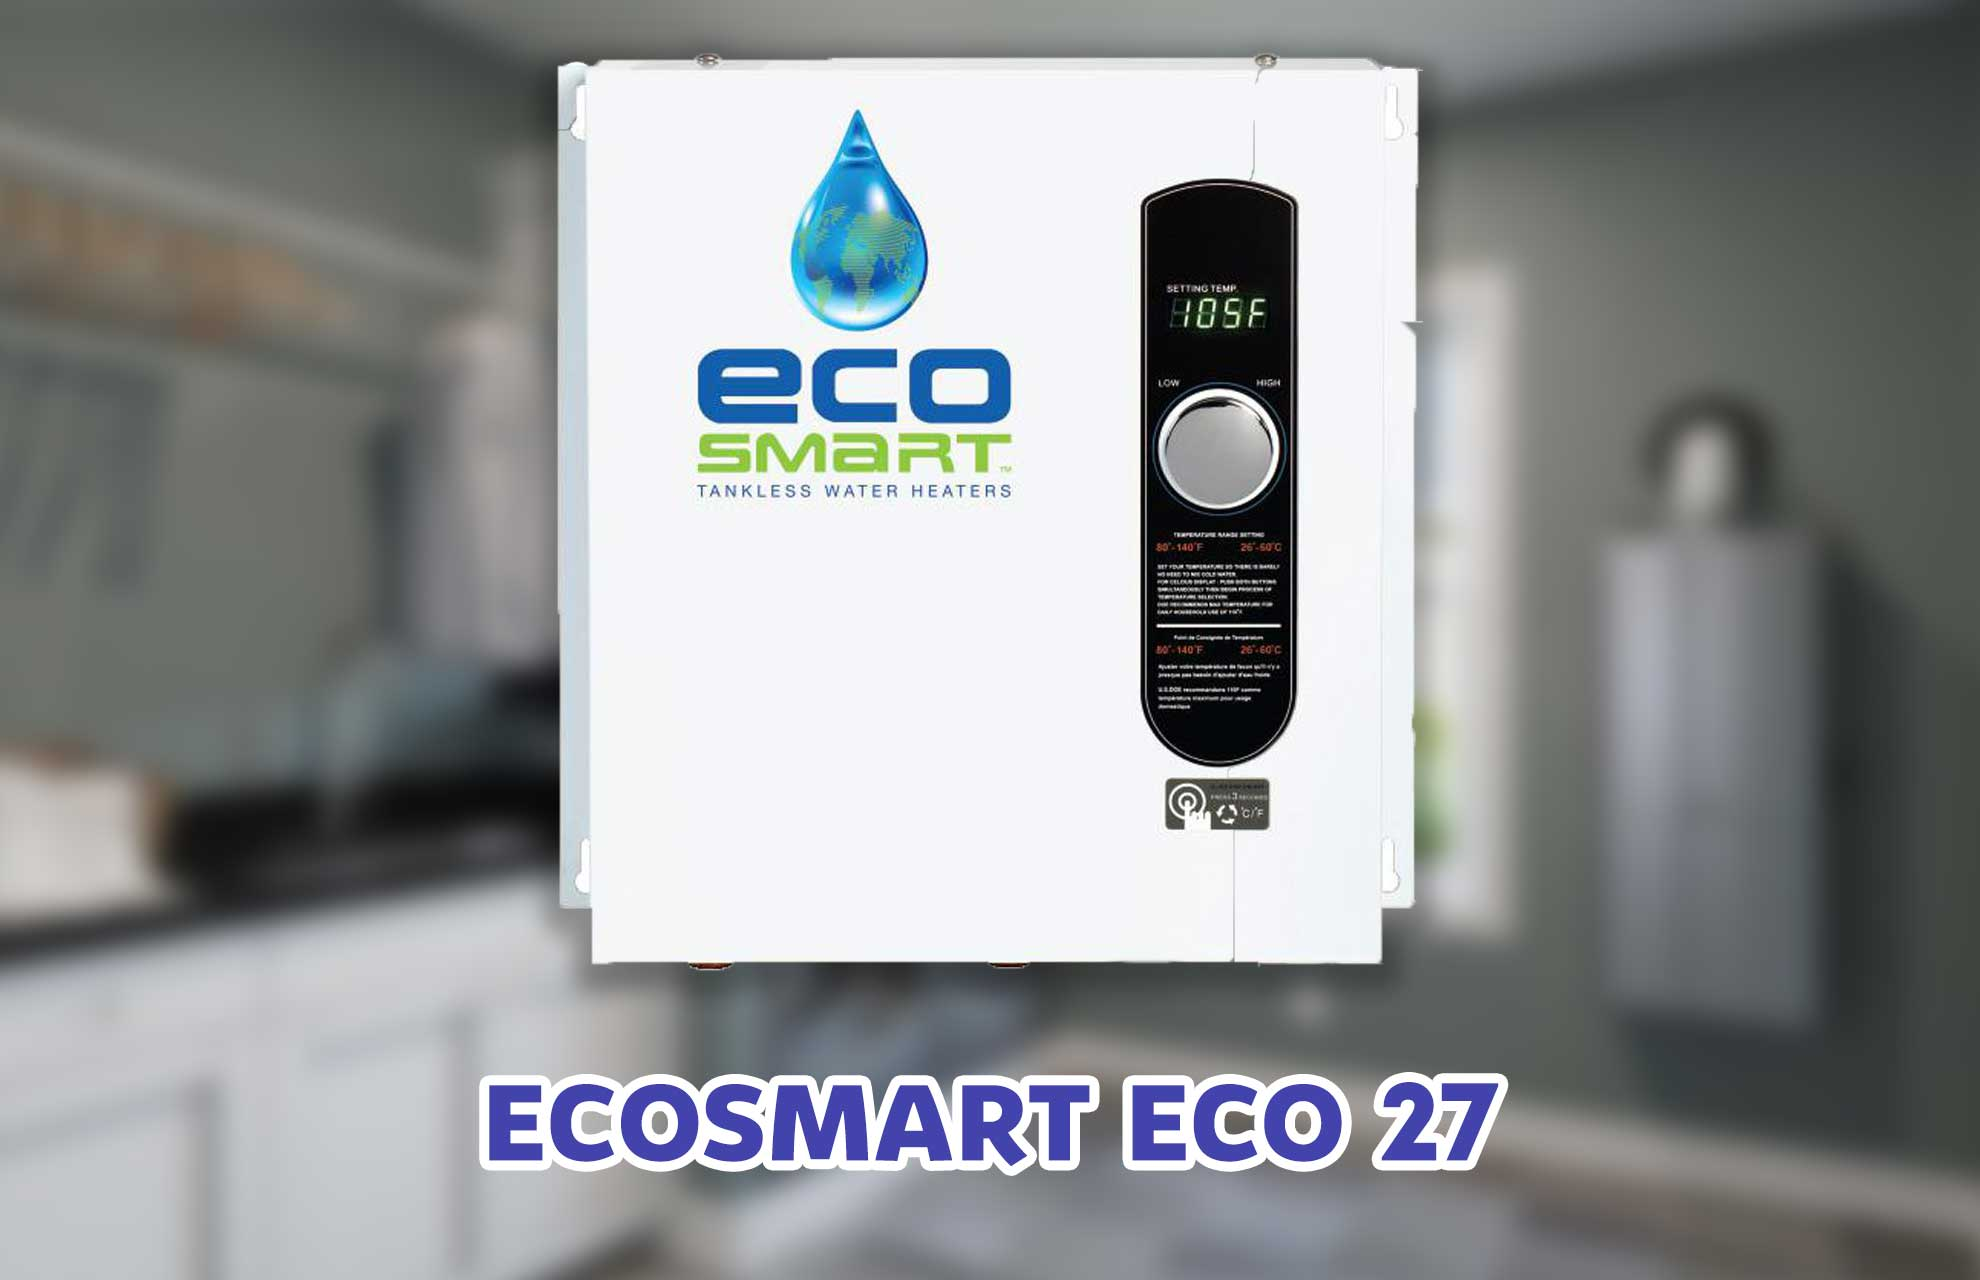 Ecosmart ECO 27 - Best Whole House Electric Tankless Water Heater